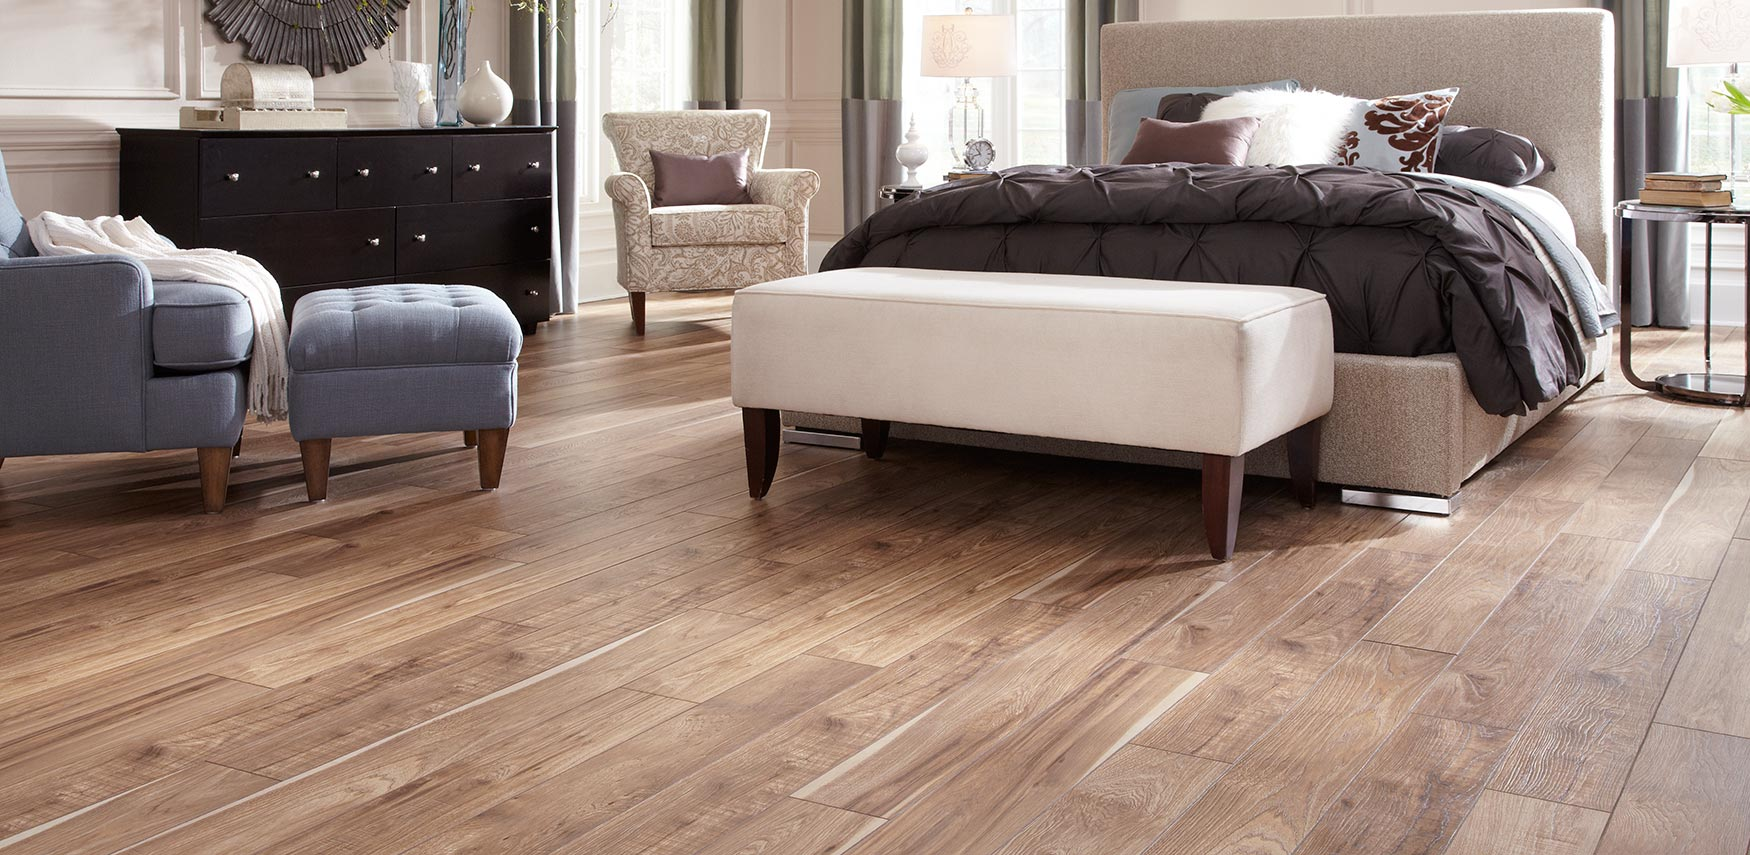 Mannington flooring resilient laminate hardwood luxury vinyl laminate flooring dailygadgetfo Choice Image